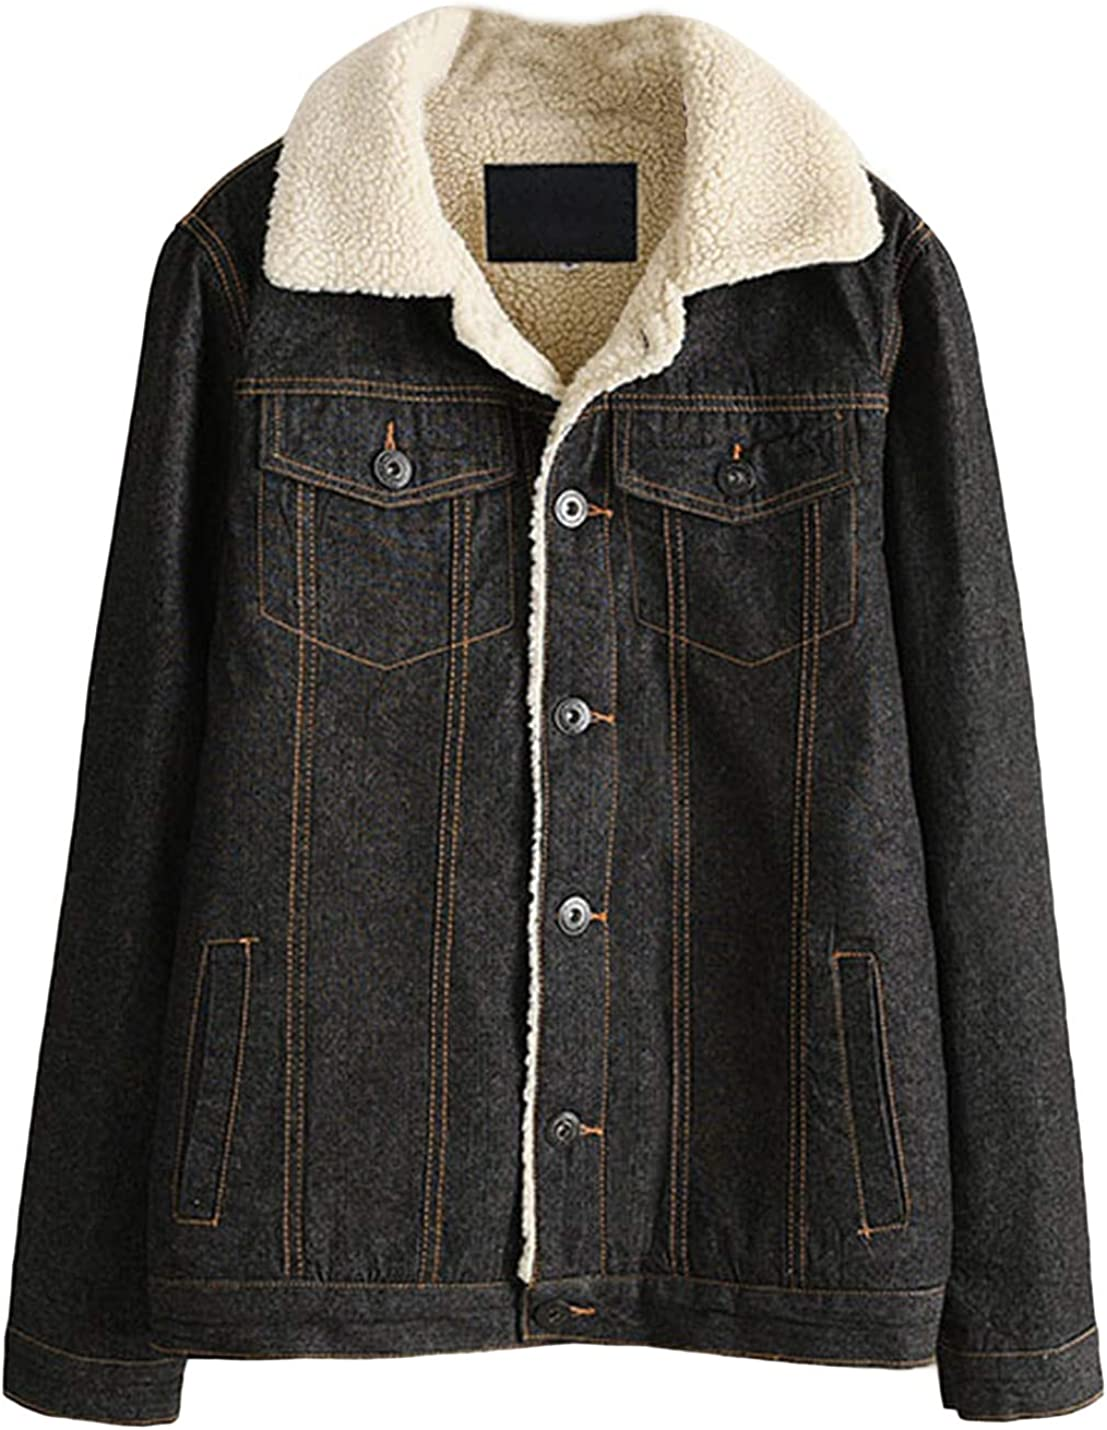 Lentta Women's Classic Relax Fit Thick Sherpa Lined BF Style Denim Jean Jacket